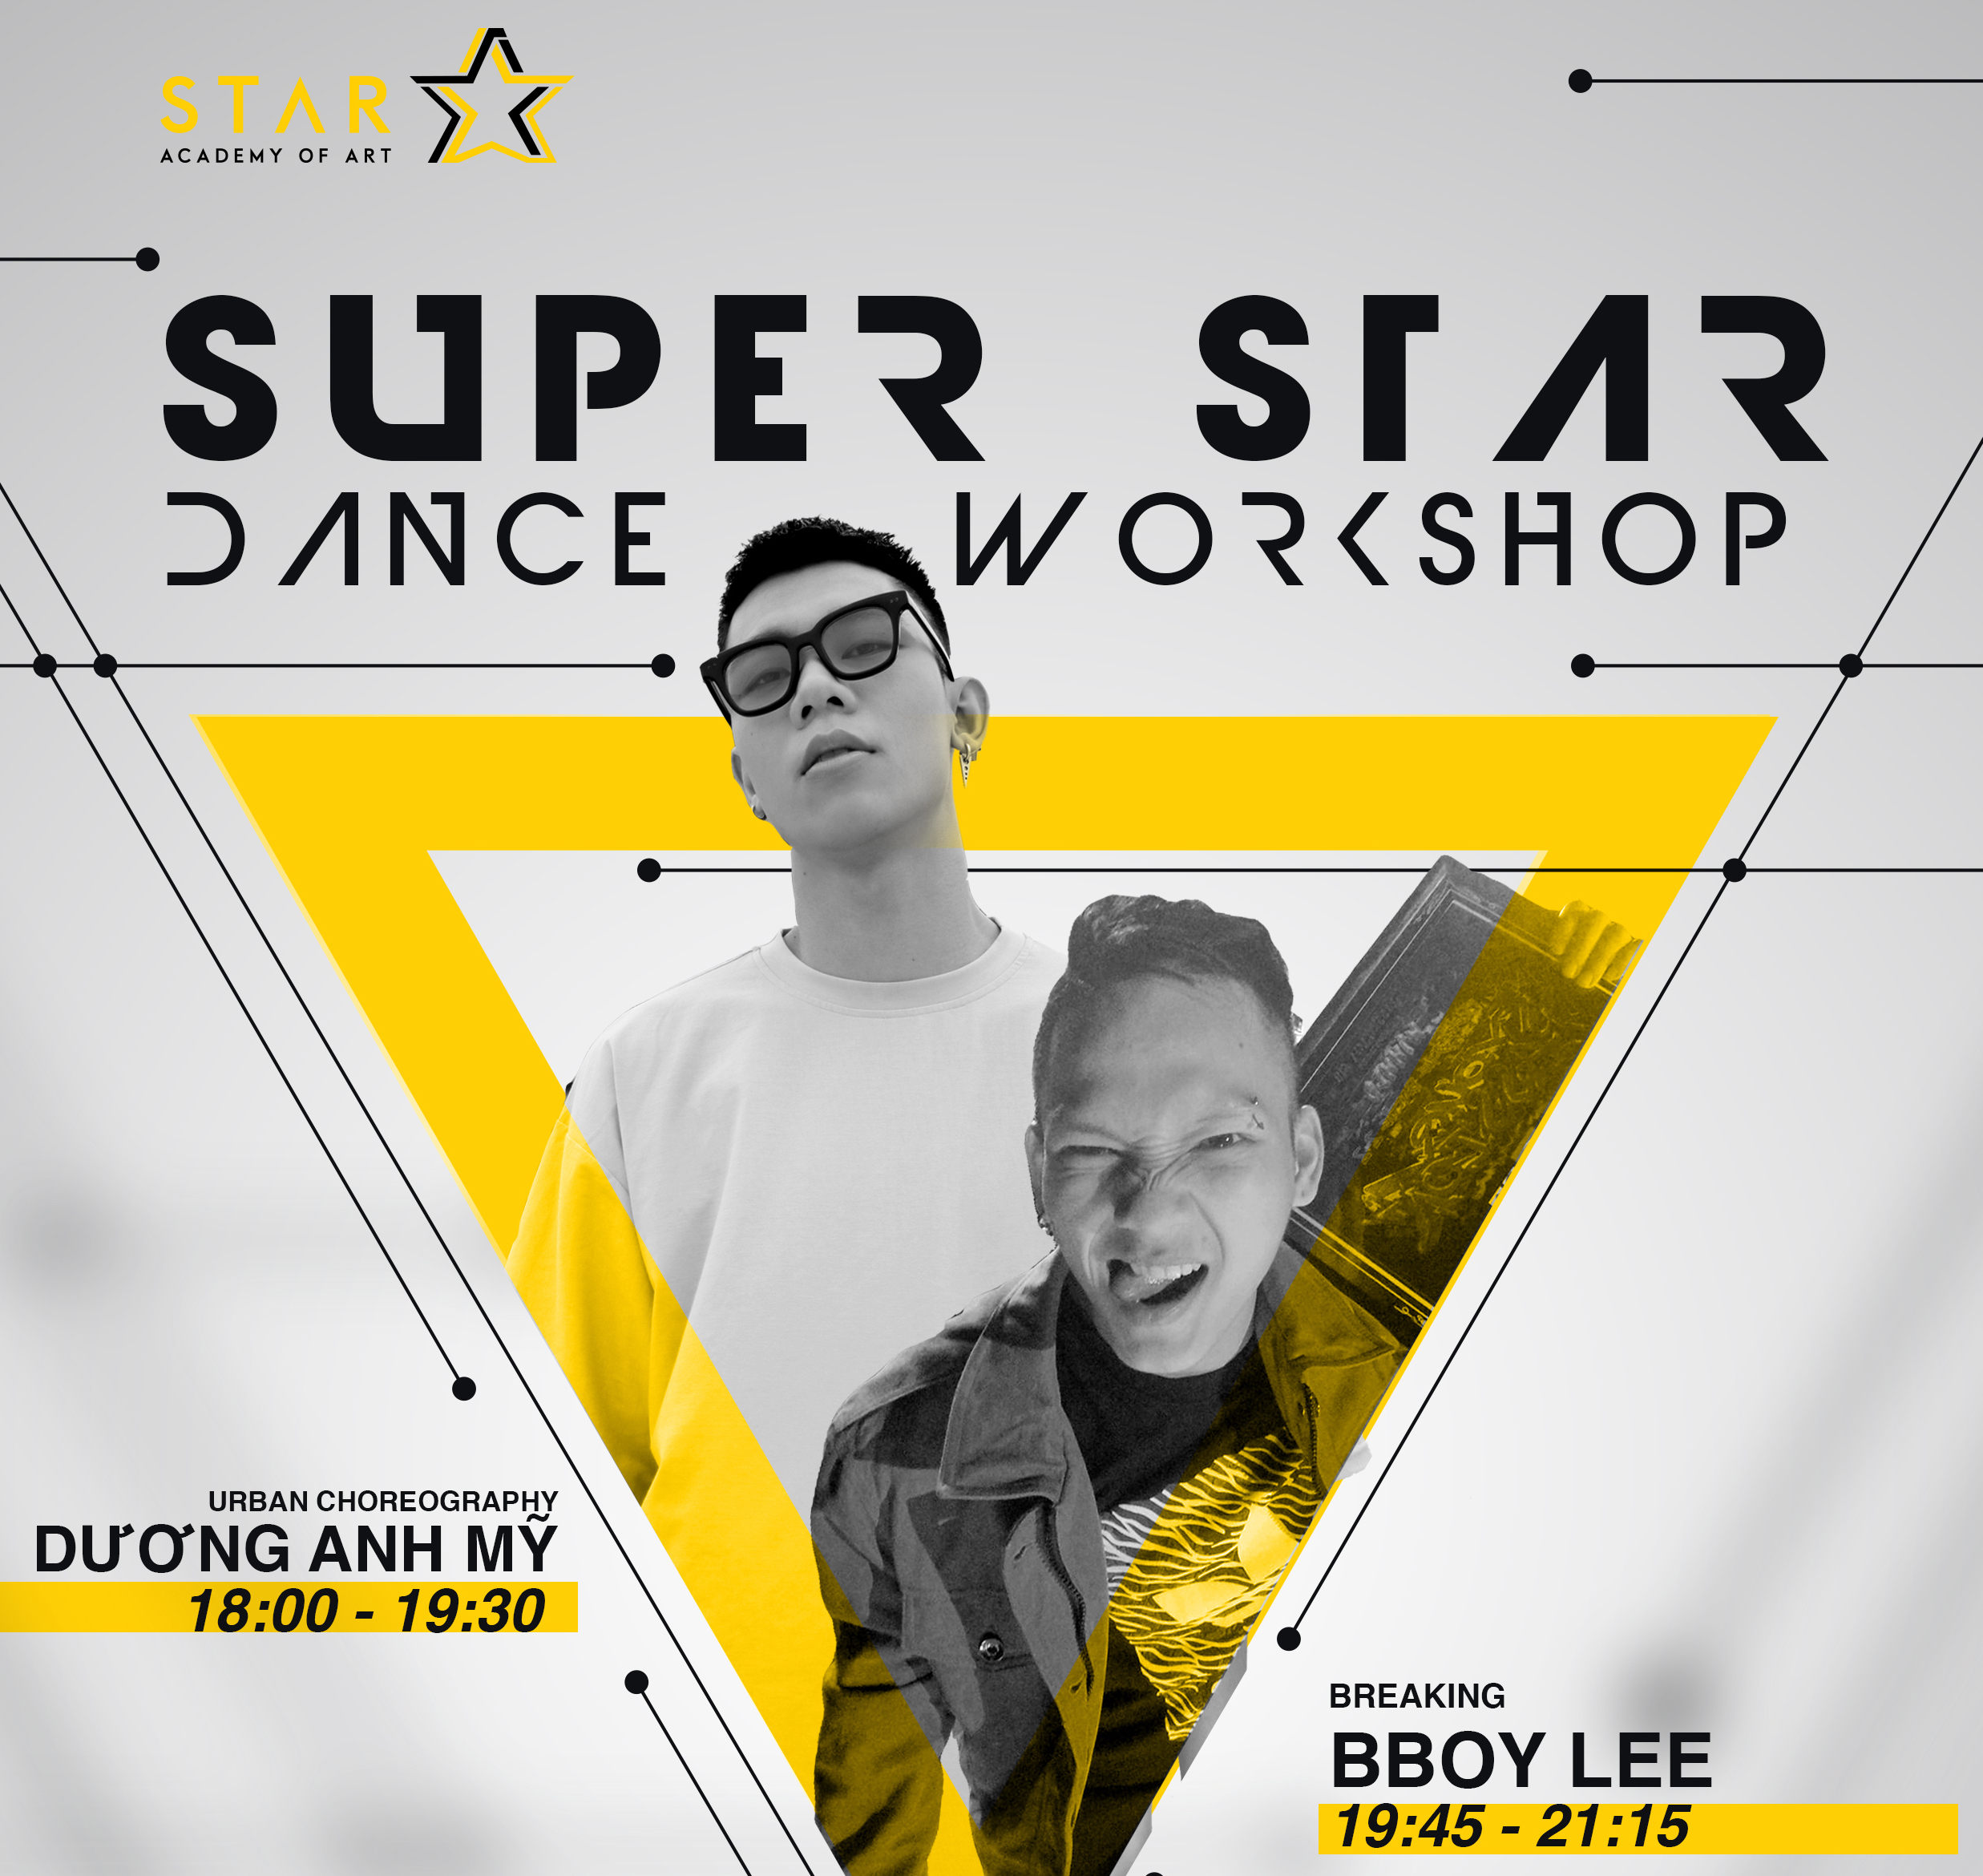 SUPER STAR DANCE WORKSHOP - 19/05/2018